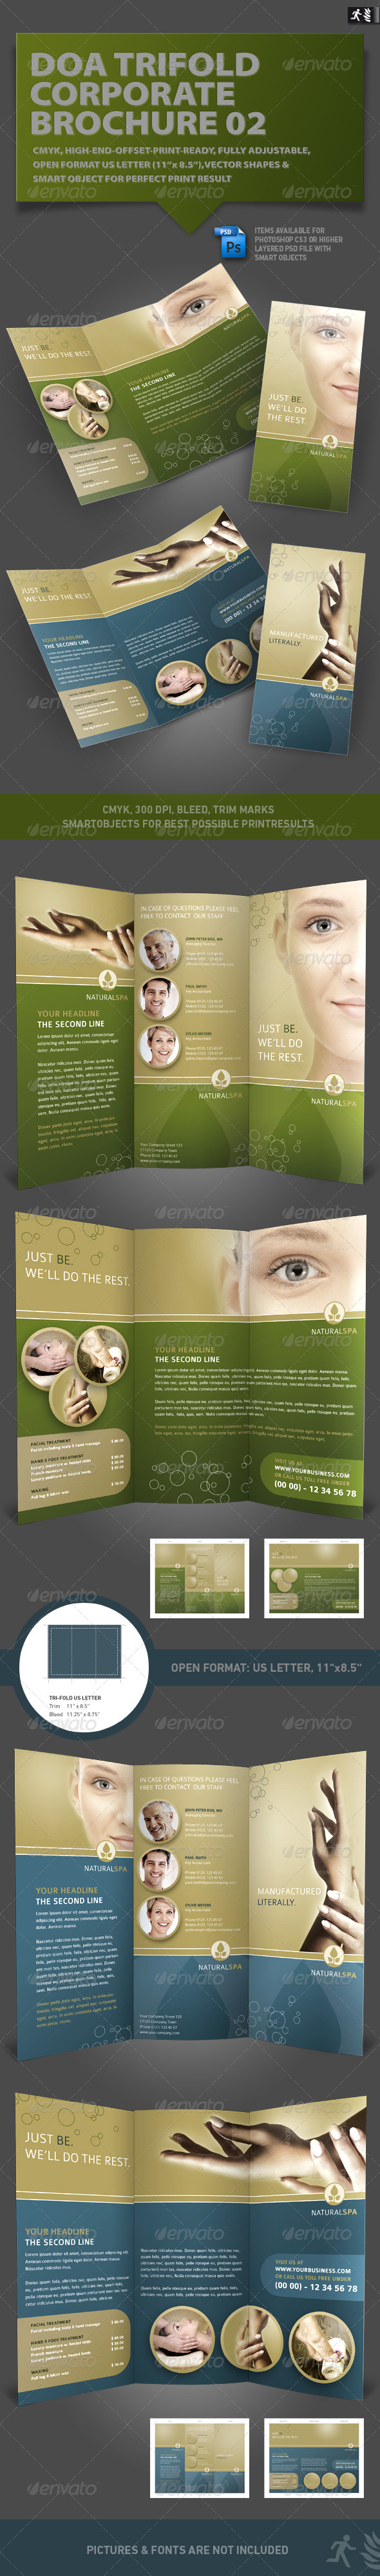 DOA Trifold Corporate Brochure 02 - Corporate Flyers